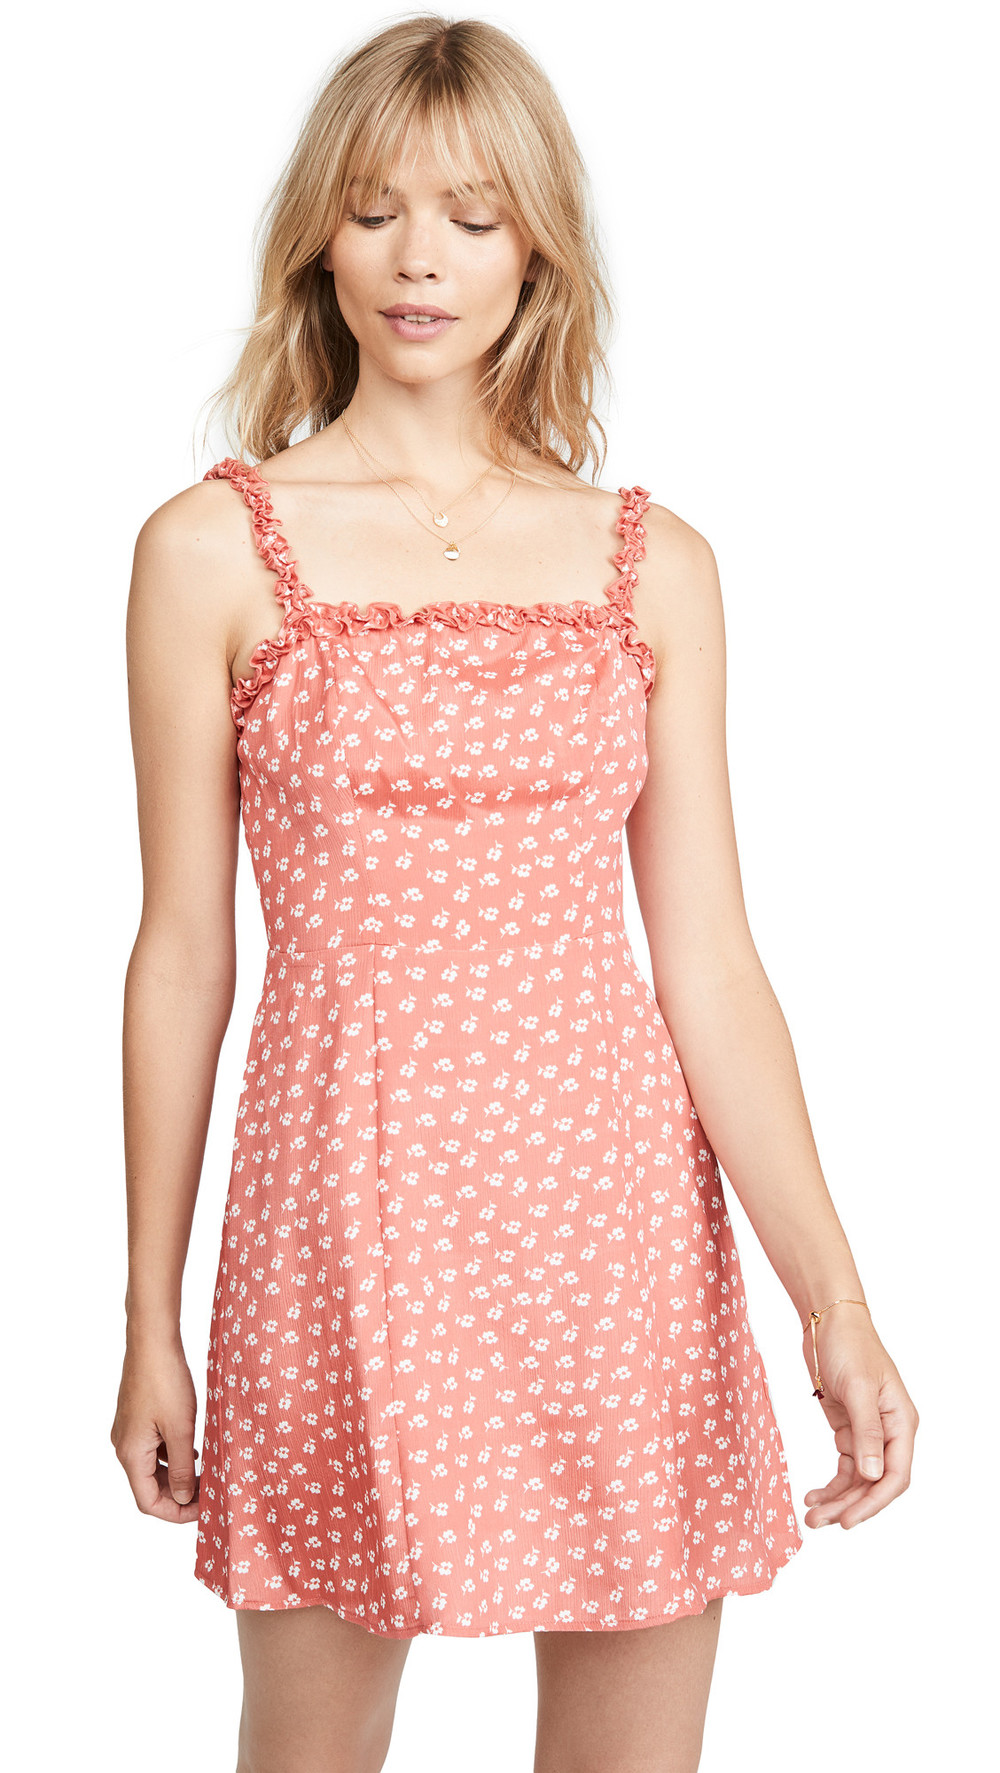 The Fifth Label Kaleidoscope Dress in ivory / coral